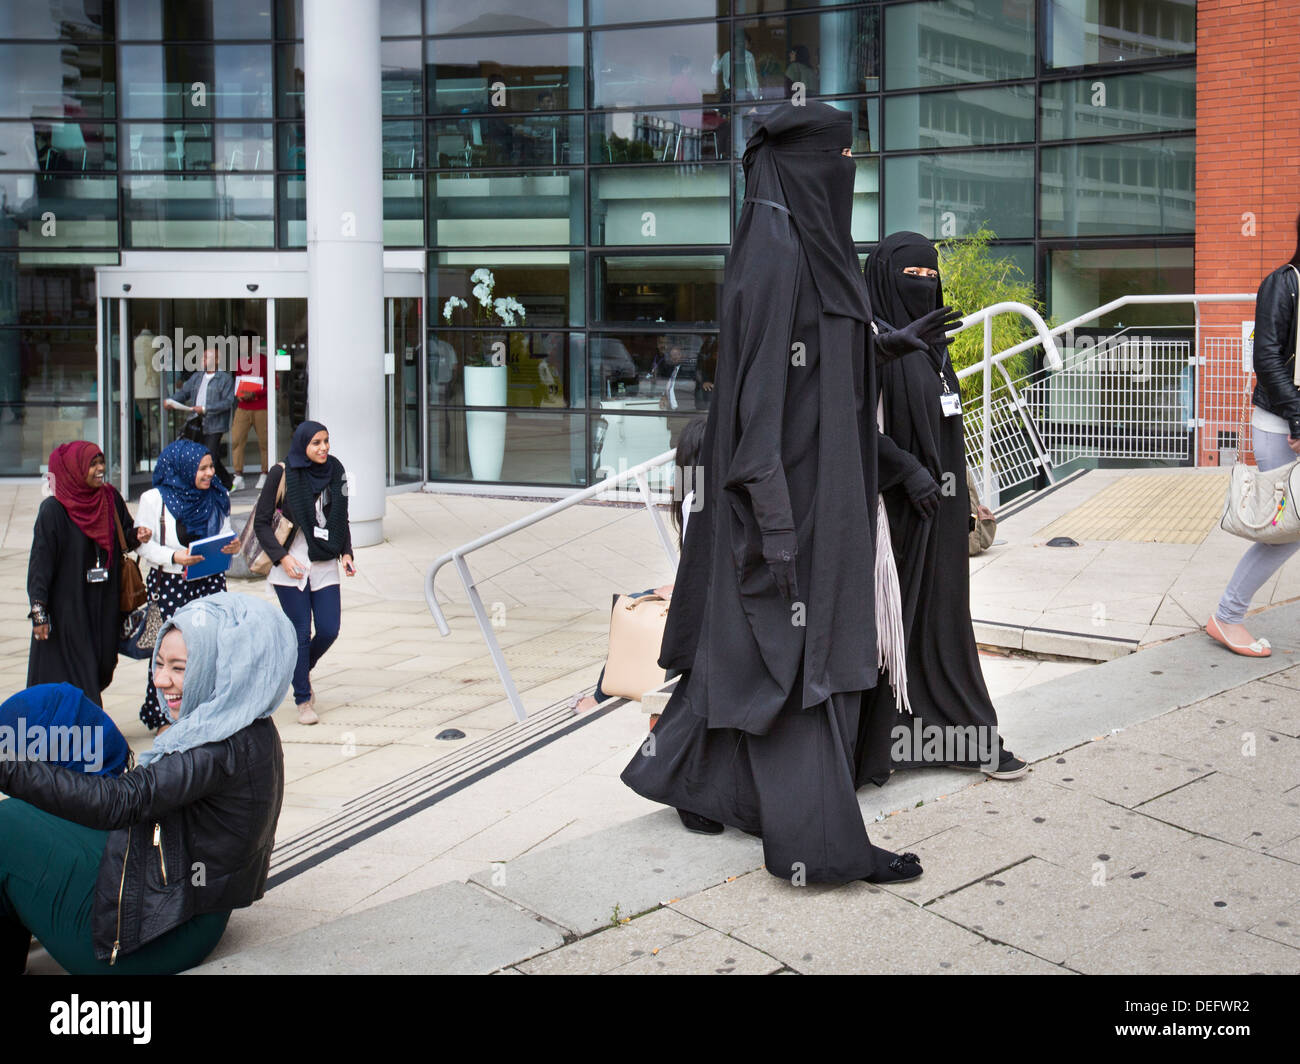 Two college students dressed in burkas in Birmingham, UK. They are students at Birmingham Metropolitan College. - Stock Image